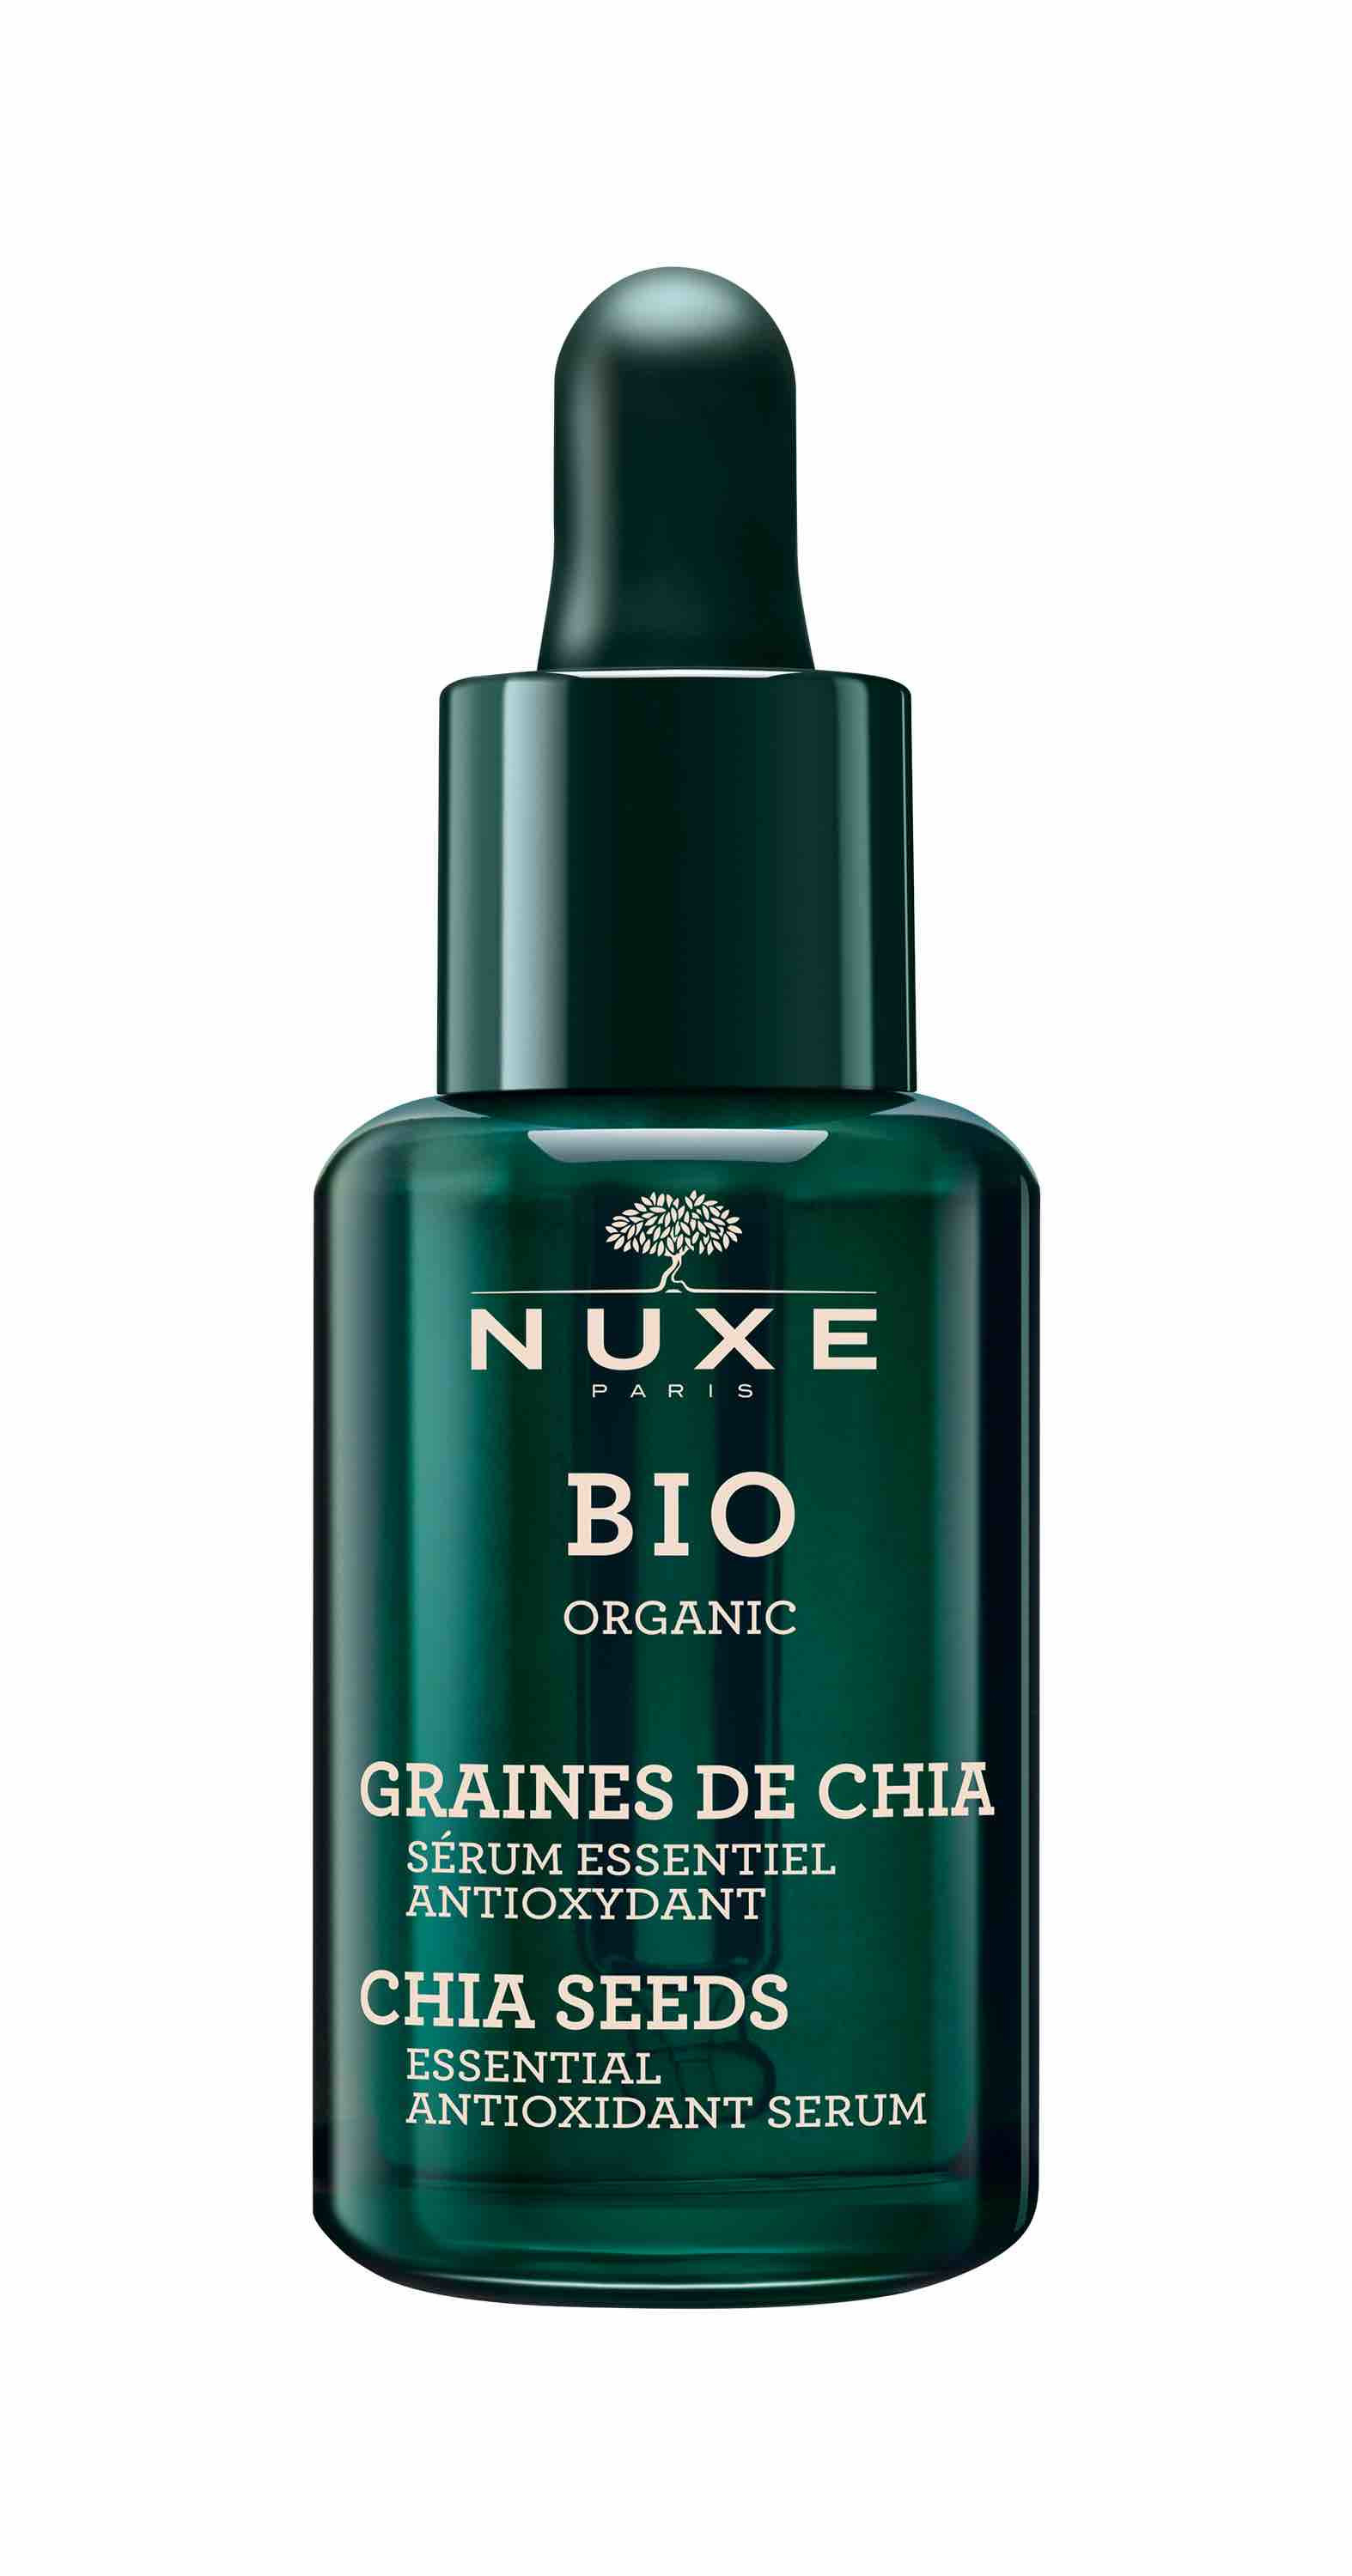 Nuxe Bio Antioxidačné sérum 30ml